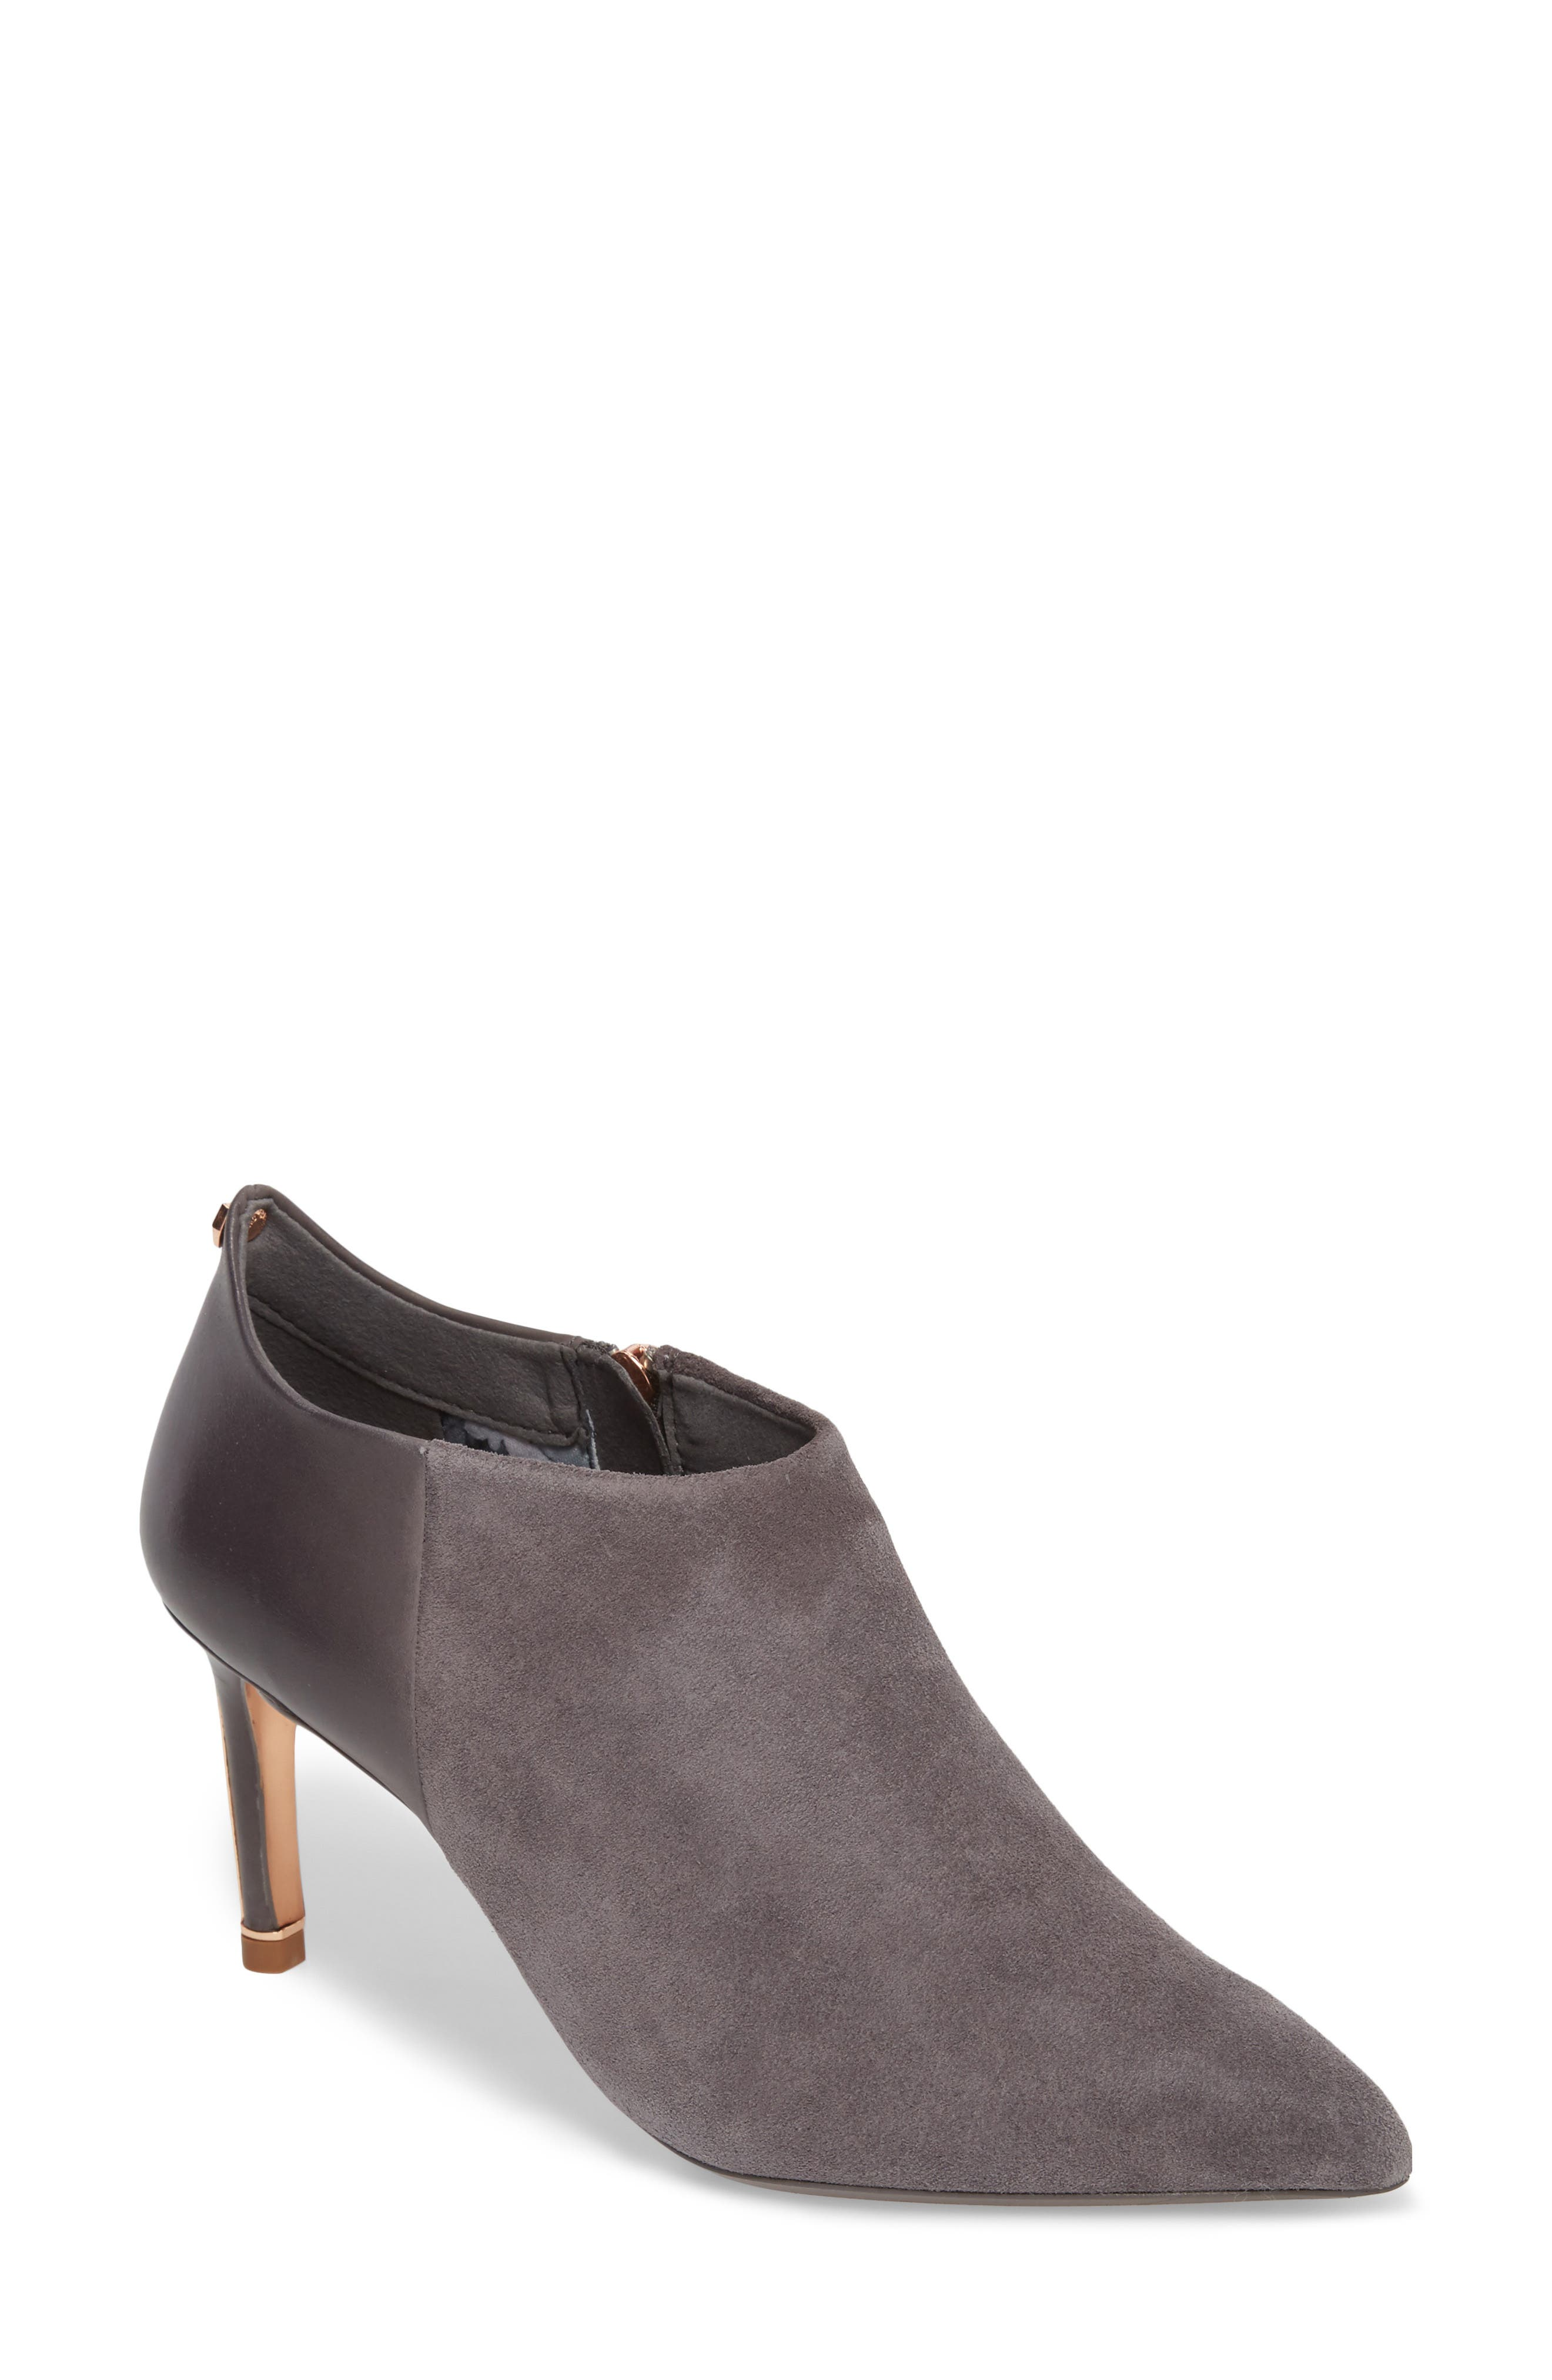 Akasher Bootie,                             Main thumbnail 1, color,                             Grey Suede